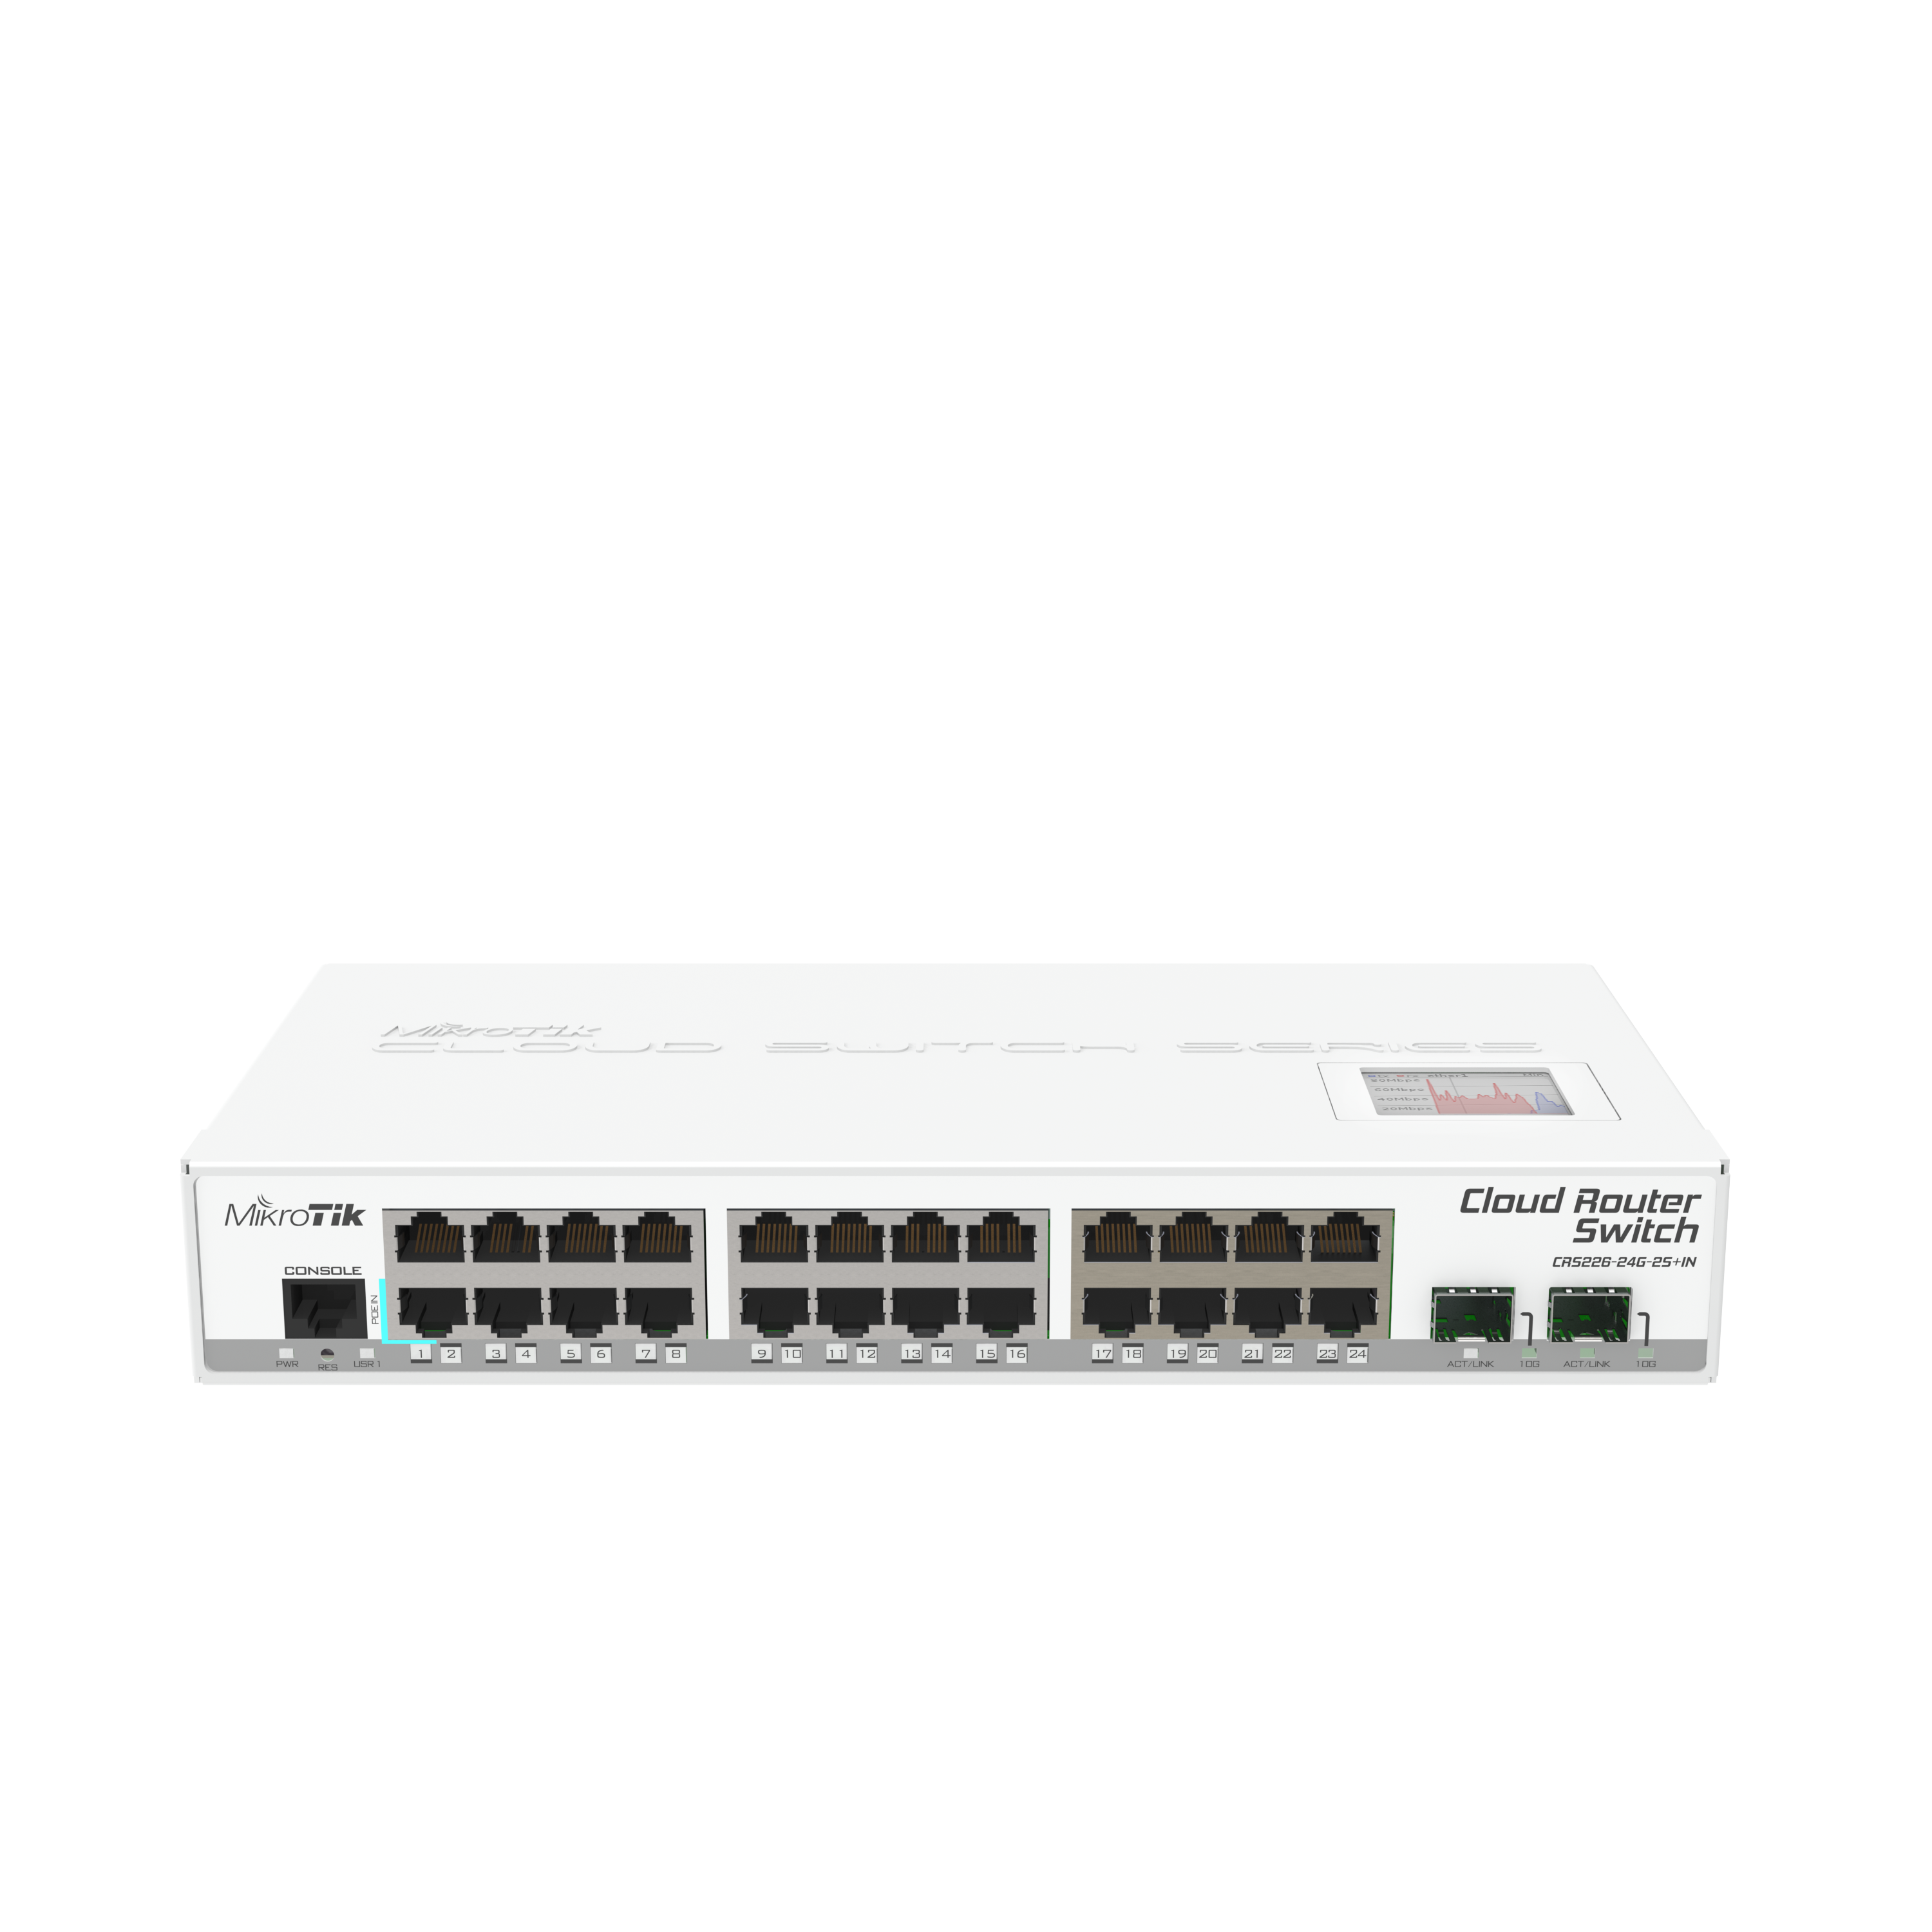 Mikrotik Routers And Wireless Products Crs226 24g 2s In